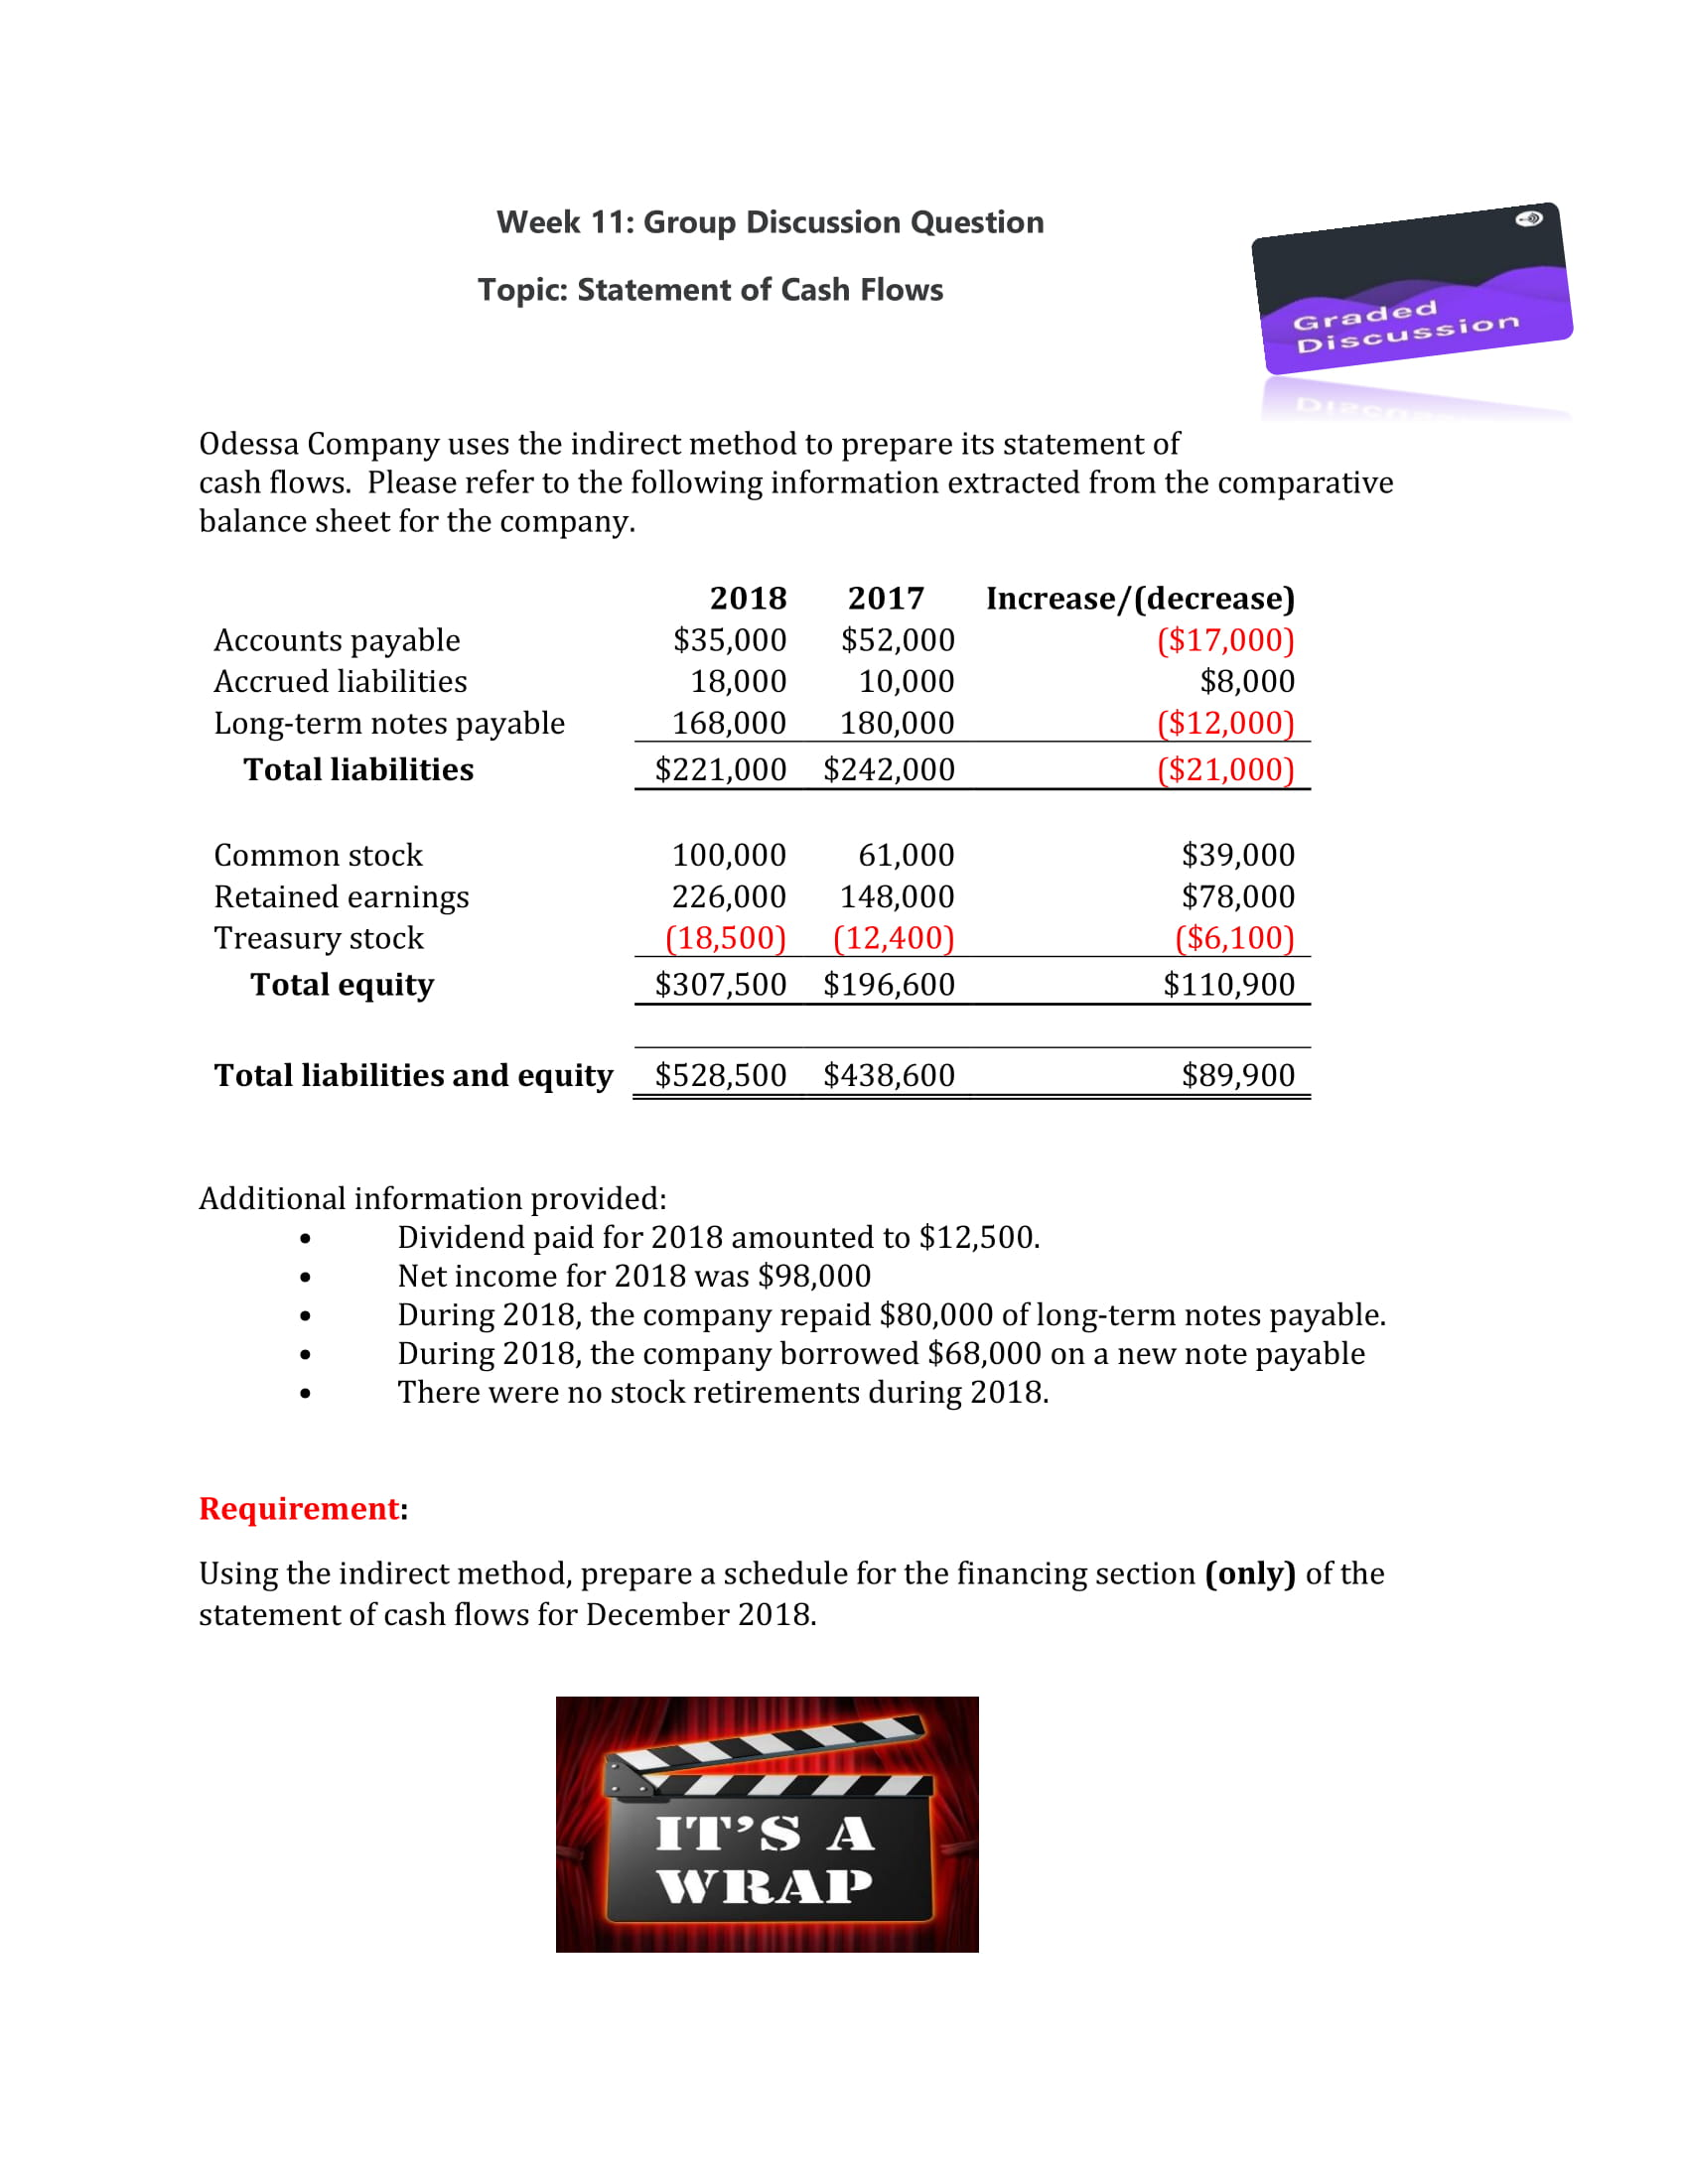 Week 11: Group Discussion Question Topic: Statement of Cash Flows Graded Discussion Odessa Company uses the indirect method to prepare its statement of cash flows. Please refer to the following information extracted from the comparative balance sheet for the company. Increase/(decrease) ($17,000) $8,000 2018 2017 Accounts payable $35,000 $52,000 Accrued liabilities 18,000 10,000 ($12,000) ($21,000) Long-term notes payable 180,000 168,000 $221,000 $242,000 Total liabilities $39,000 Common stock 100,000 61,000 Retained earnings $78,000 148,000 226,000 Treasury stock Total equity ($6,100) $110,900 (18,500) (12,400) $307,500 $196,600 $528,500 $438,600 Total liabilities and equity $89,900 Additional information provided: Dividend paid for 2018 amounted to $12,500 Net income for 2018 was $98,000 During 2018, the company repaid $80,000 of long-term notes payable. During 2018, the company borrowed $68,000 on a new note payable There were no stock retirements during 2018. Requirement: Using the indirect method, prepare a schedule for the financing section (only) of the statement of cash flows for December 2018 IT'S A WRAP